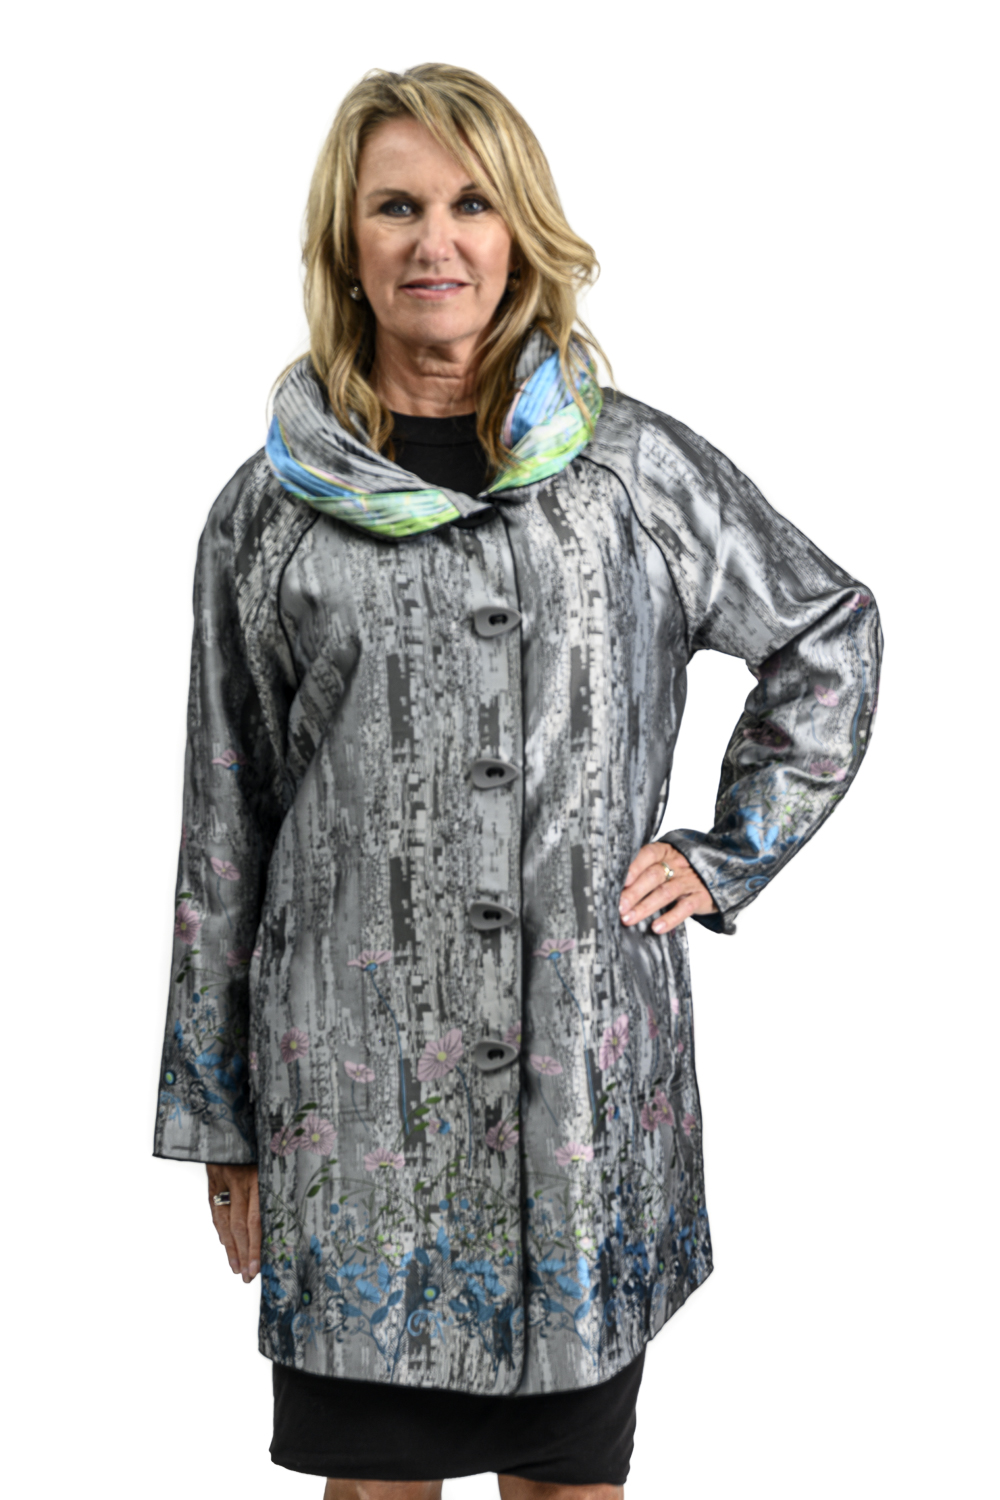 W85 2 UBU Reversible Raincoat Wildflowers